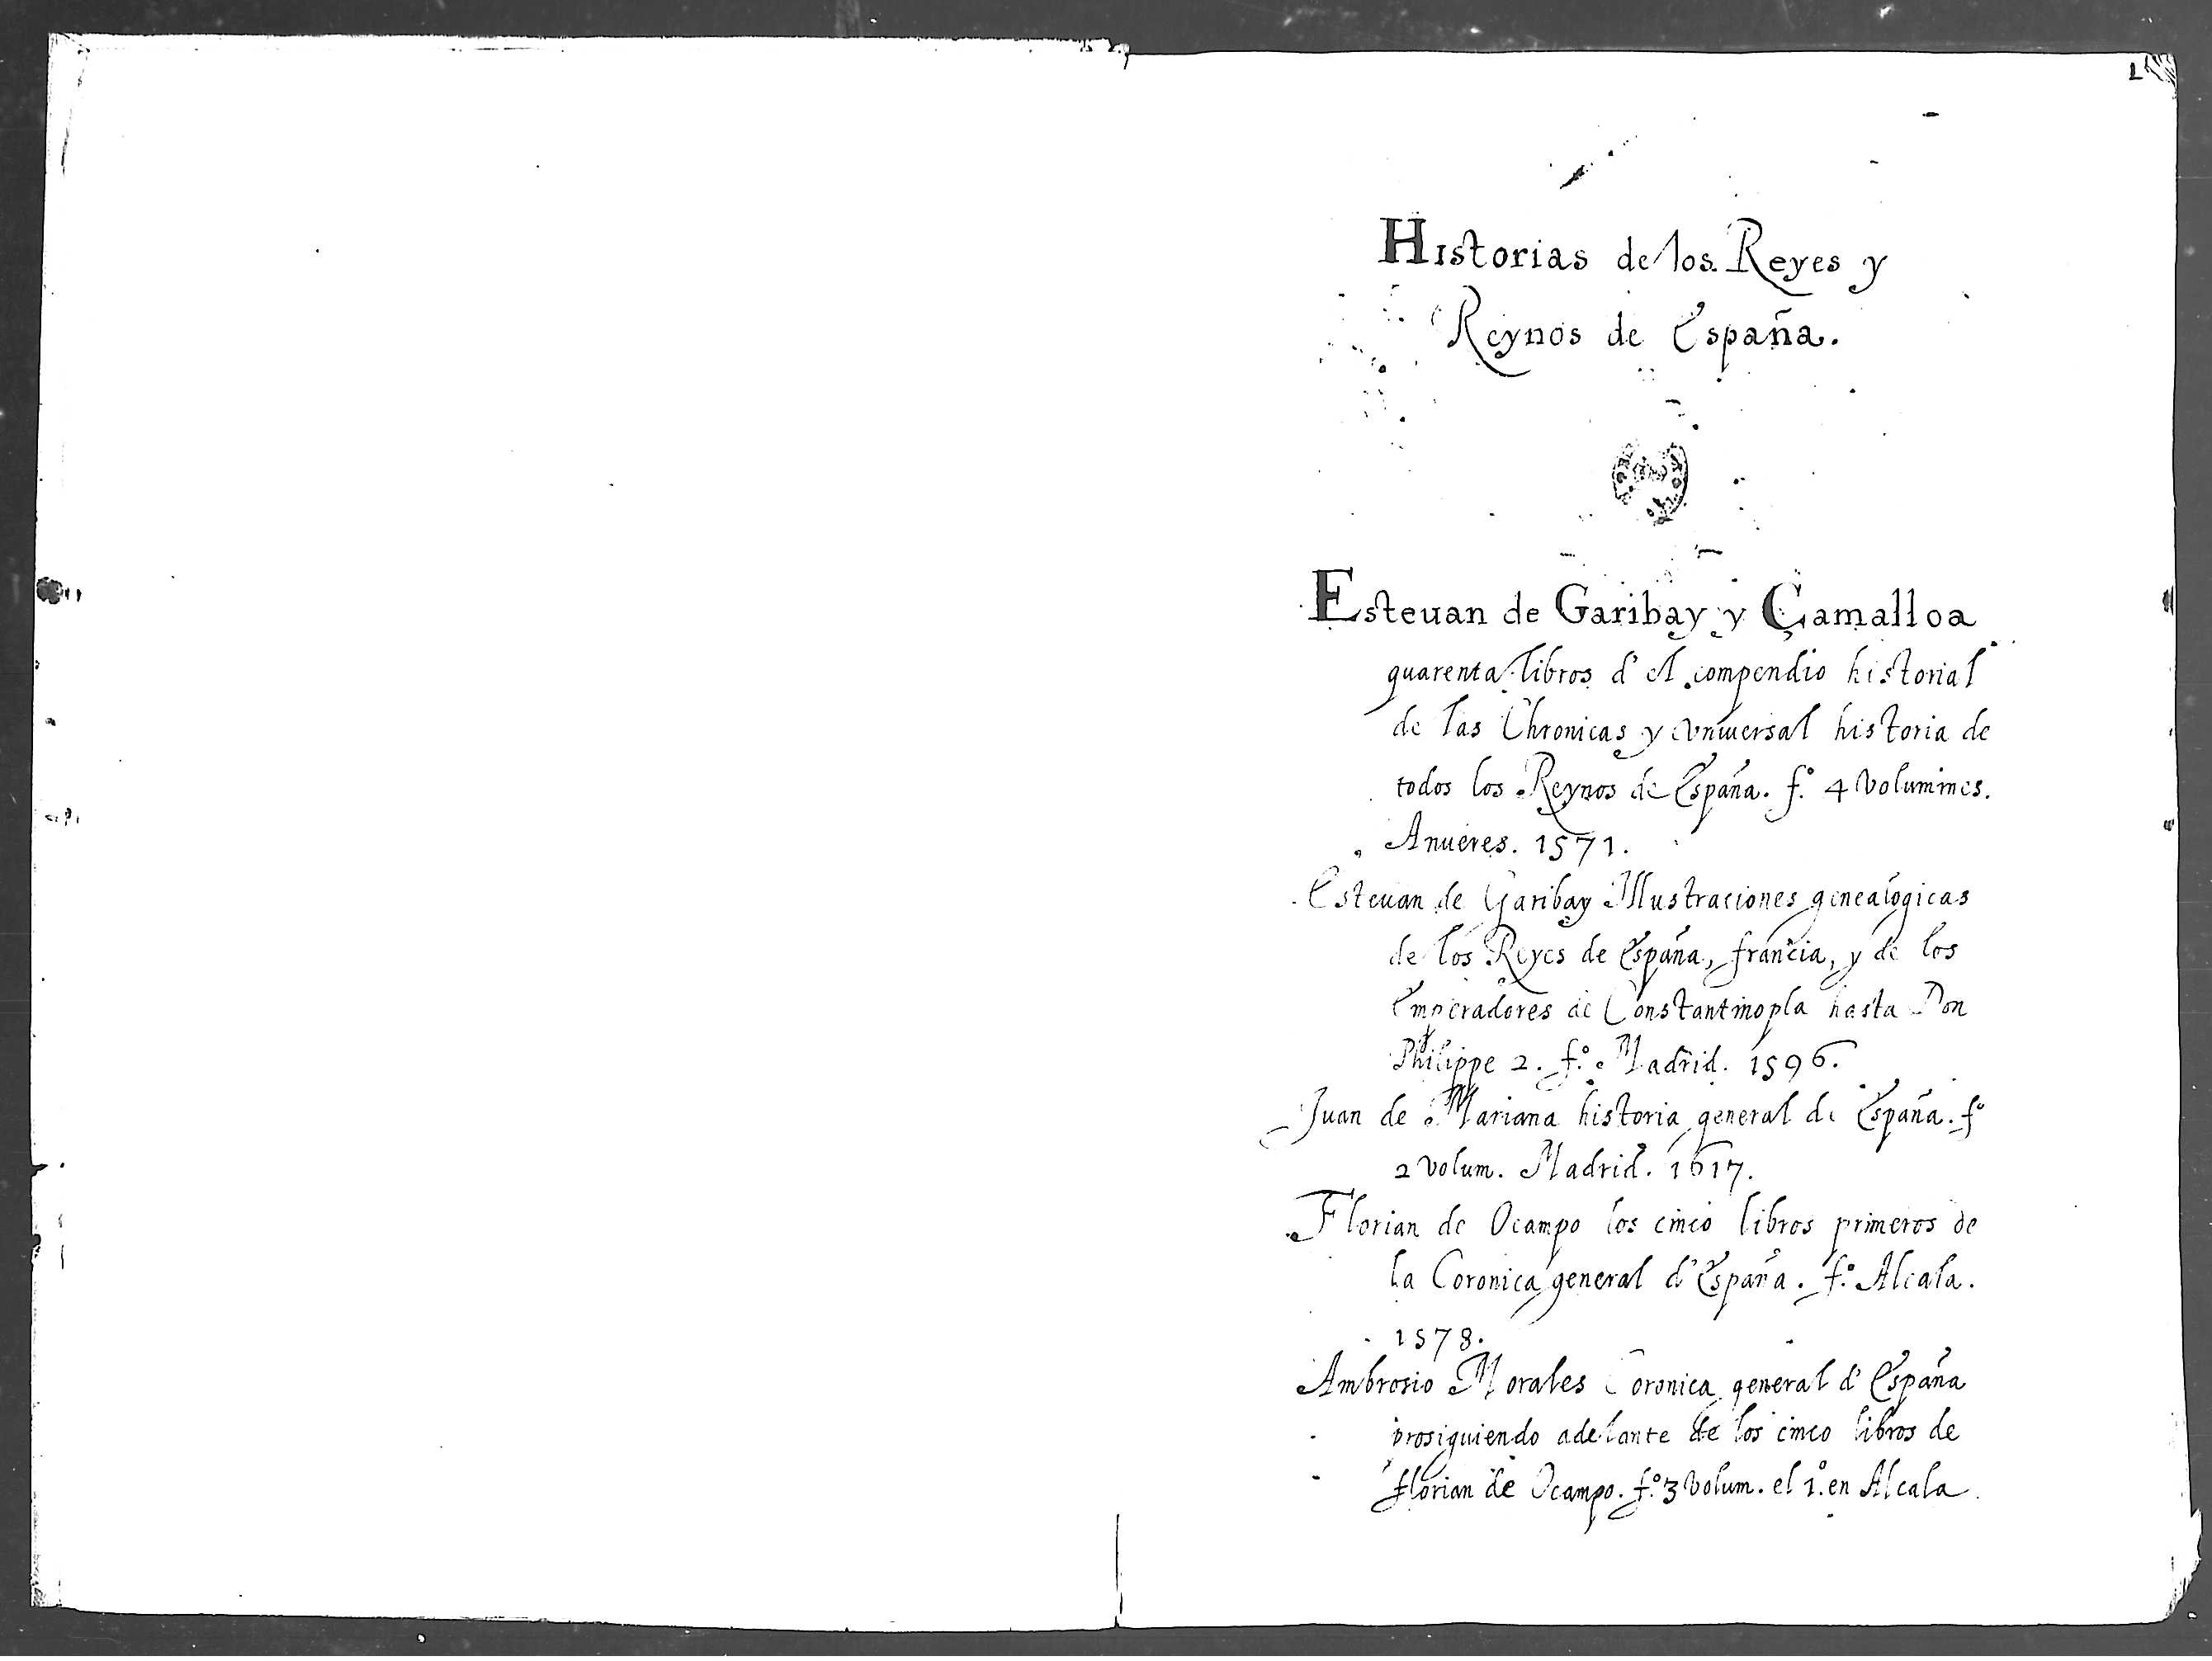 Earliest Extant Document Containing Russian 55